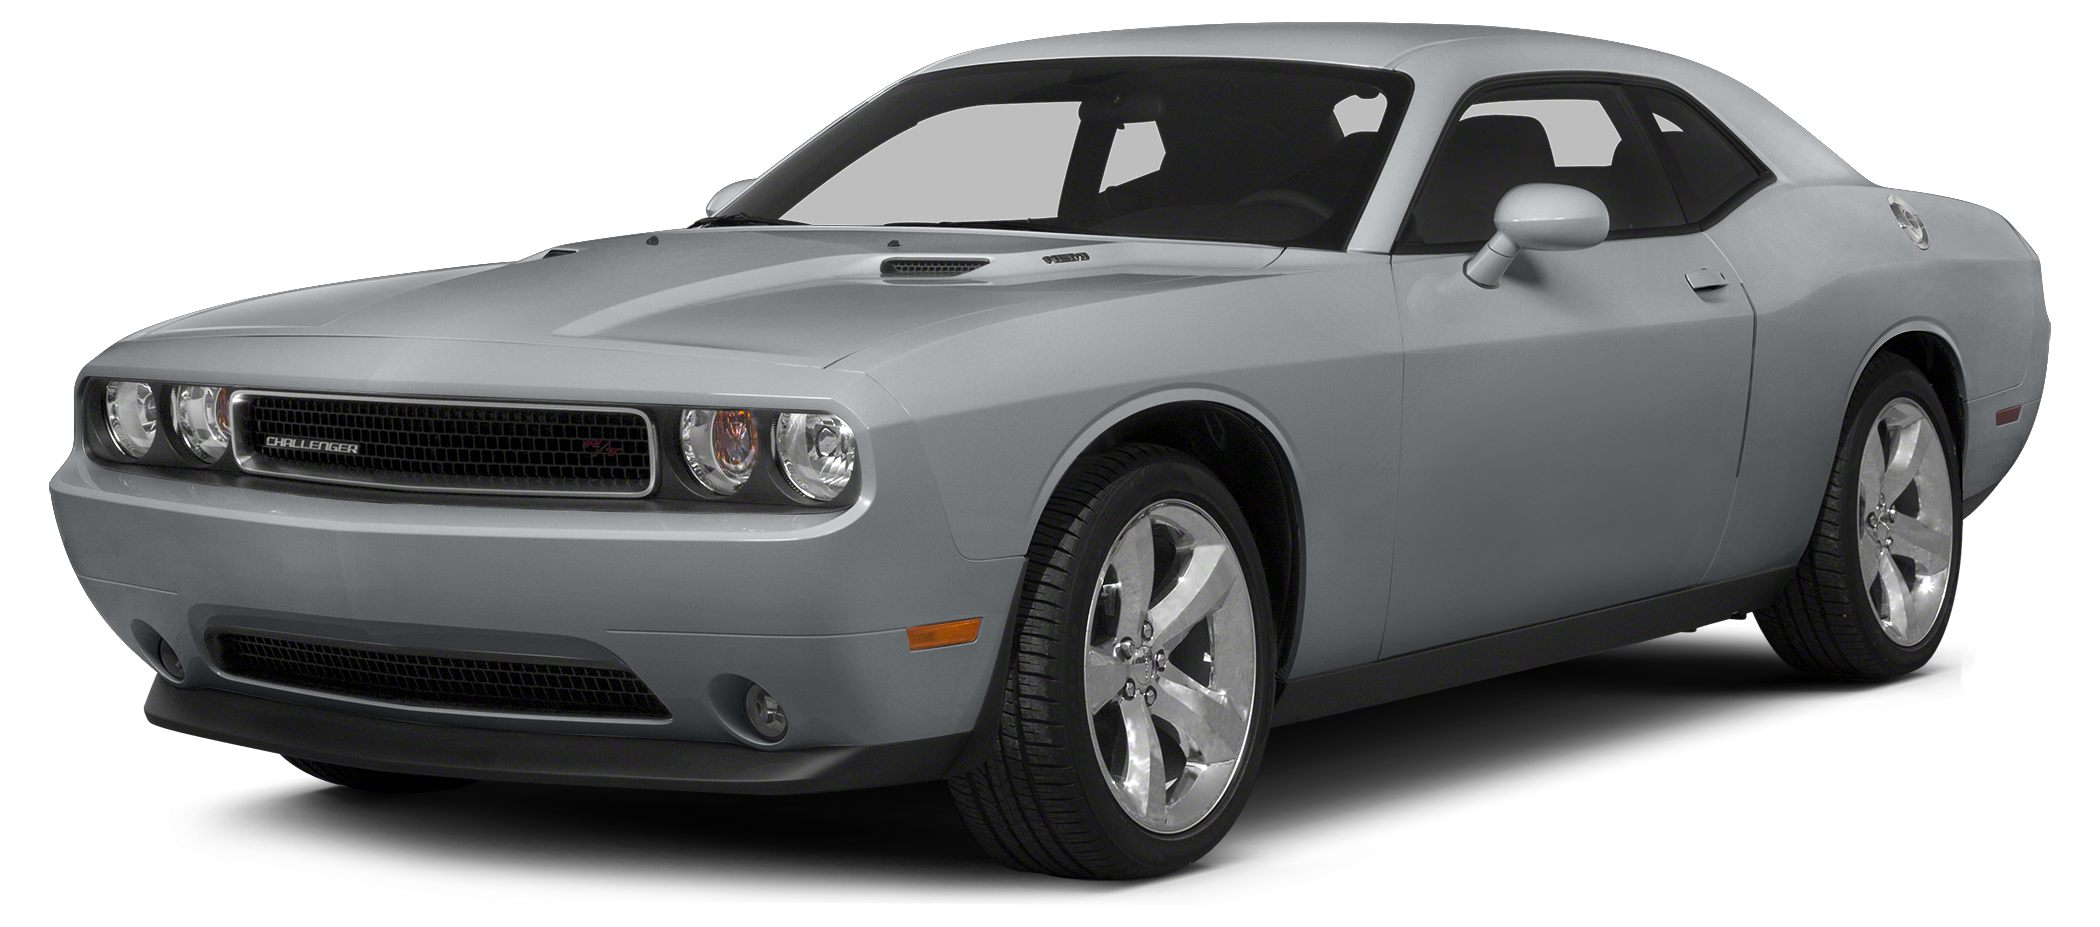 2014 Dodge Challenger RT Miles 12608Color Billet Silver Clearcoat Metallic Stock 2008 VIN 2